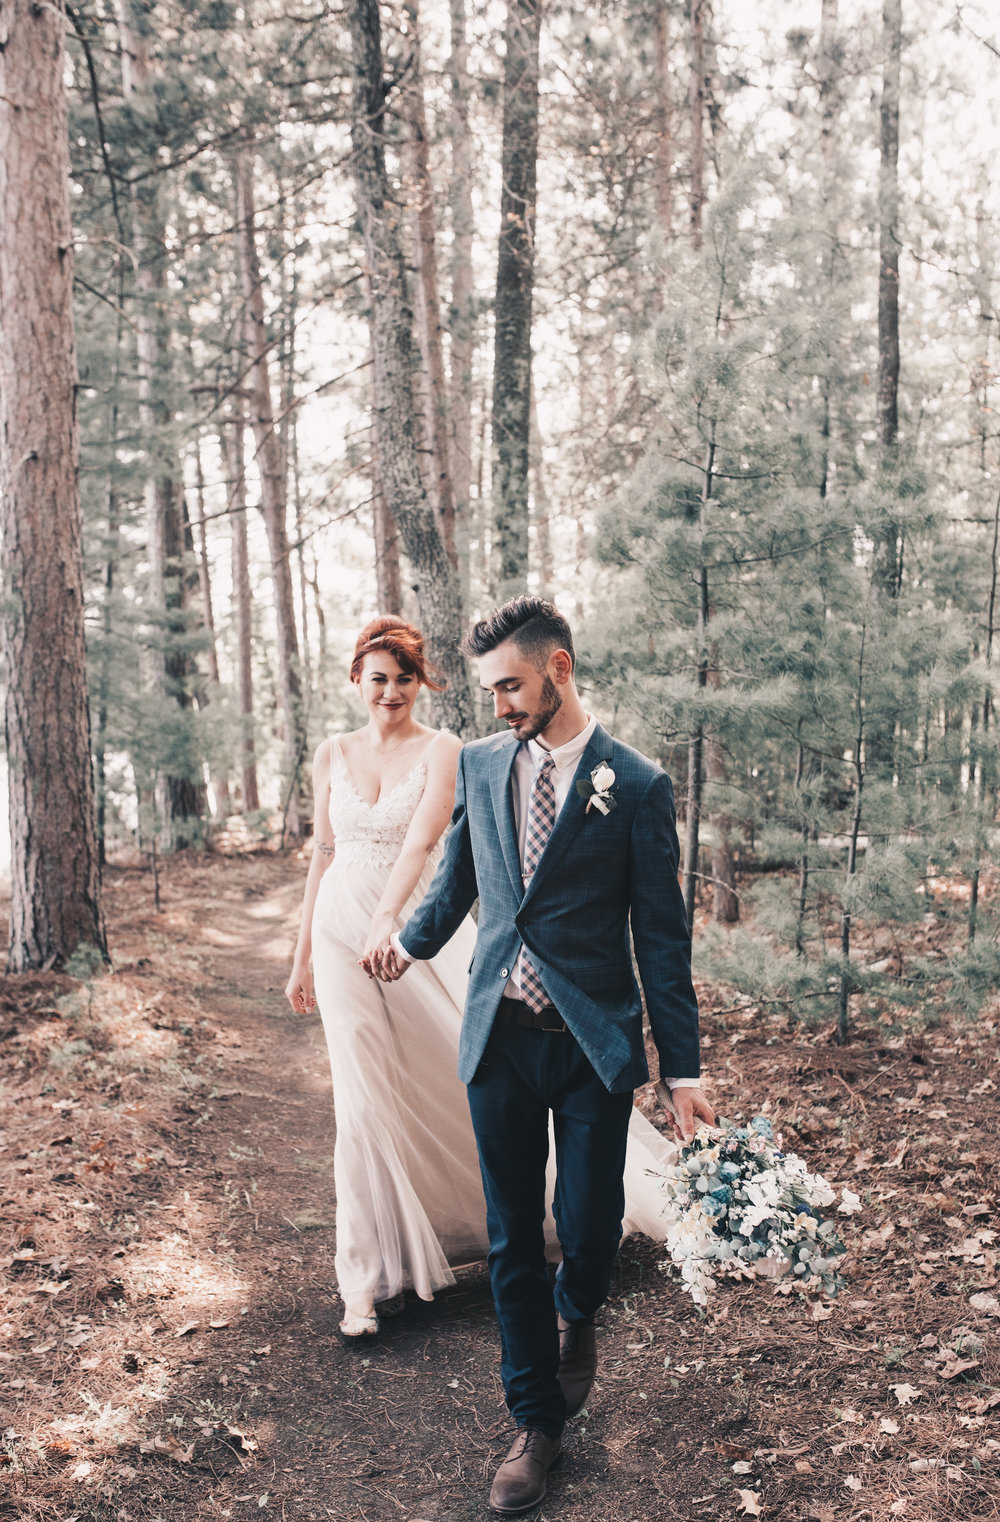 Wooded Wedding Photography, Bride and Groom Photos, Outdoor Wedding